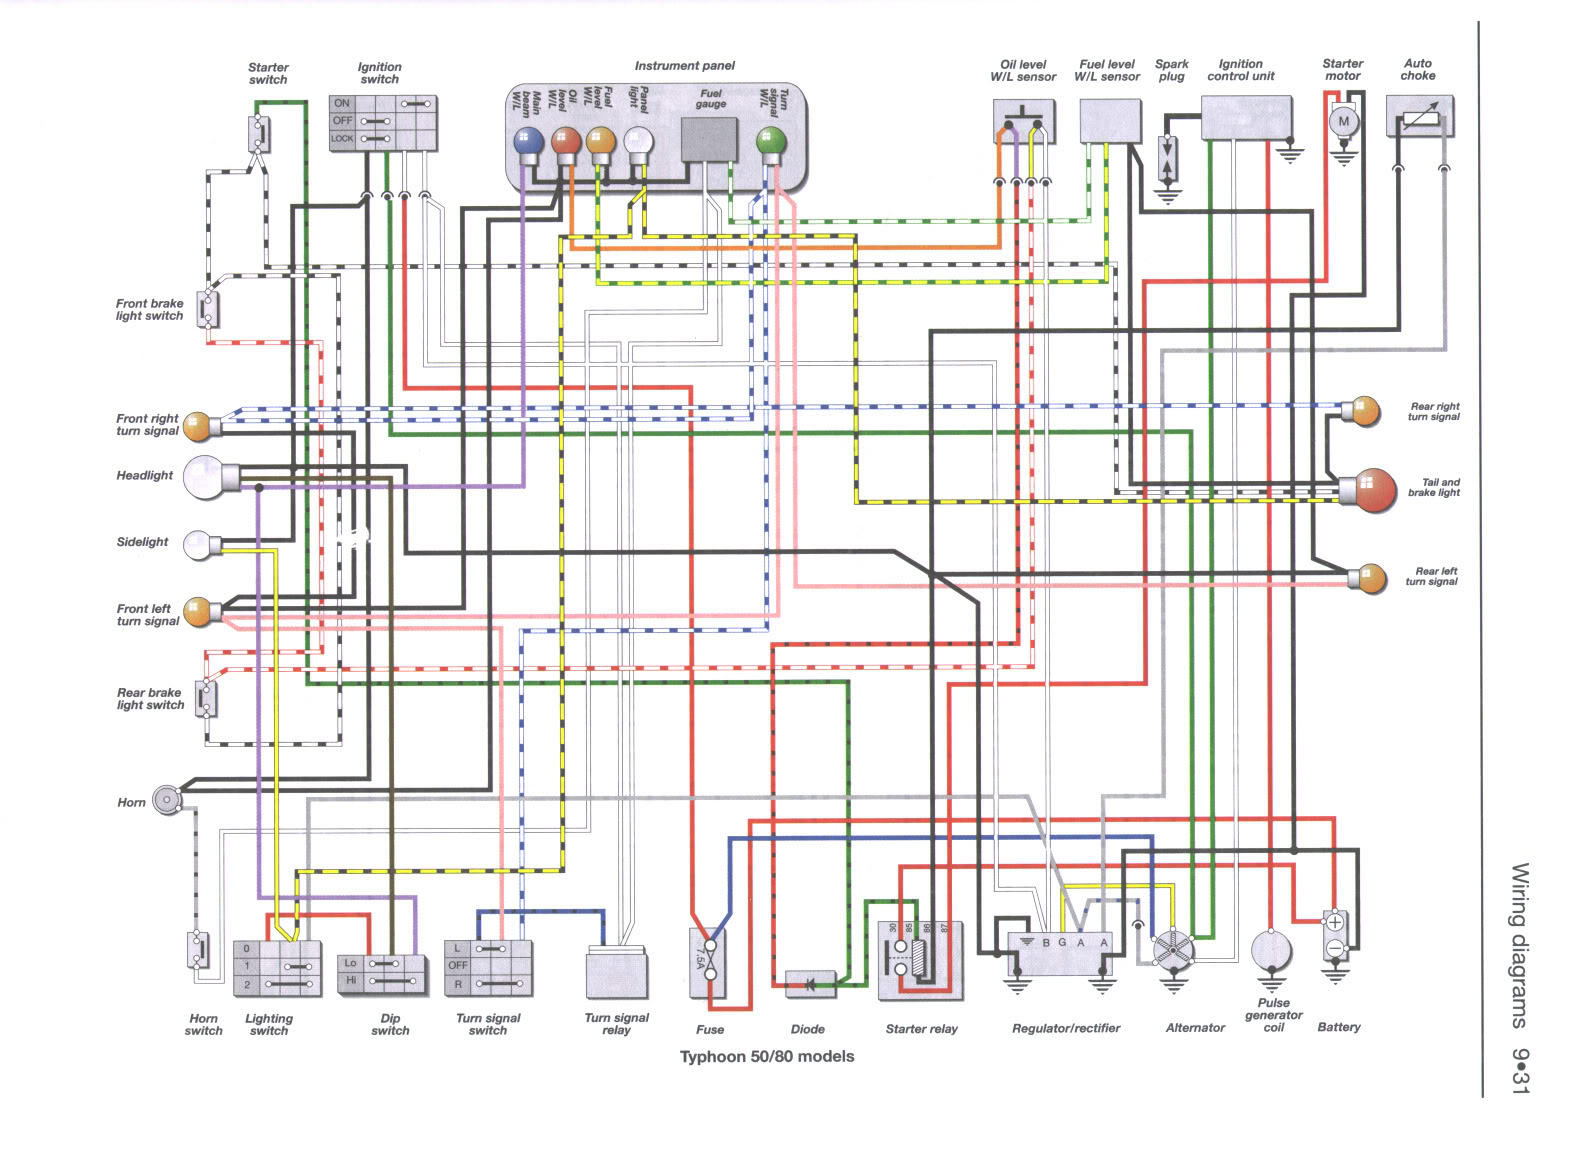 Wiring Diagrams Linhai 300cc Scooter as well Dc Cdi Ignition Schematic in addition Dazon Atv Wiring Diagram furthermore 7805 Voltage Regulator Circuit Diagram furthermore 157qmj Wiring Diagram. on gy6 scooter wiring diagram